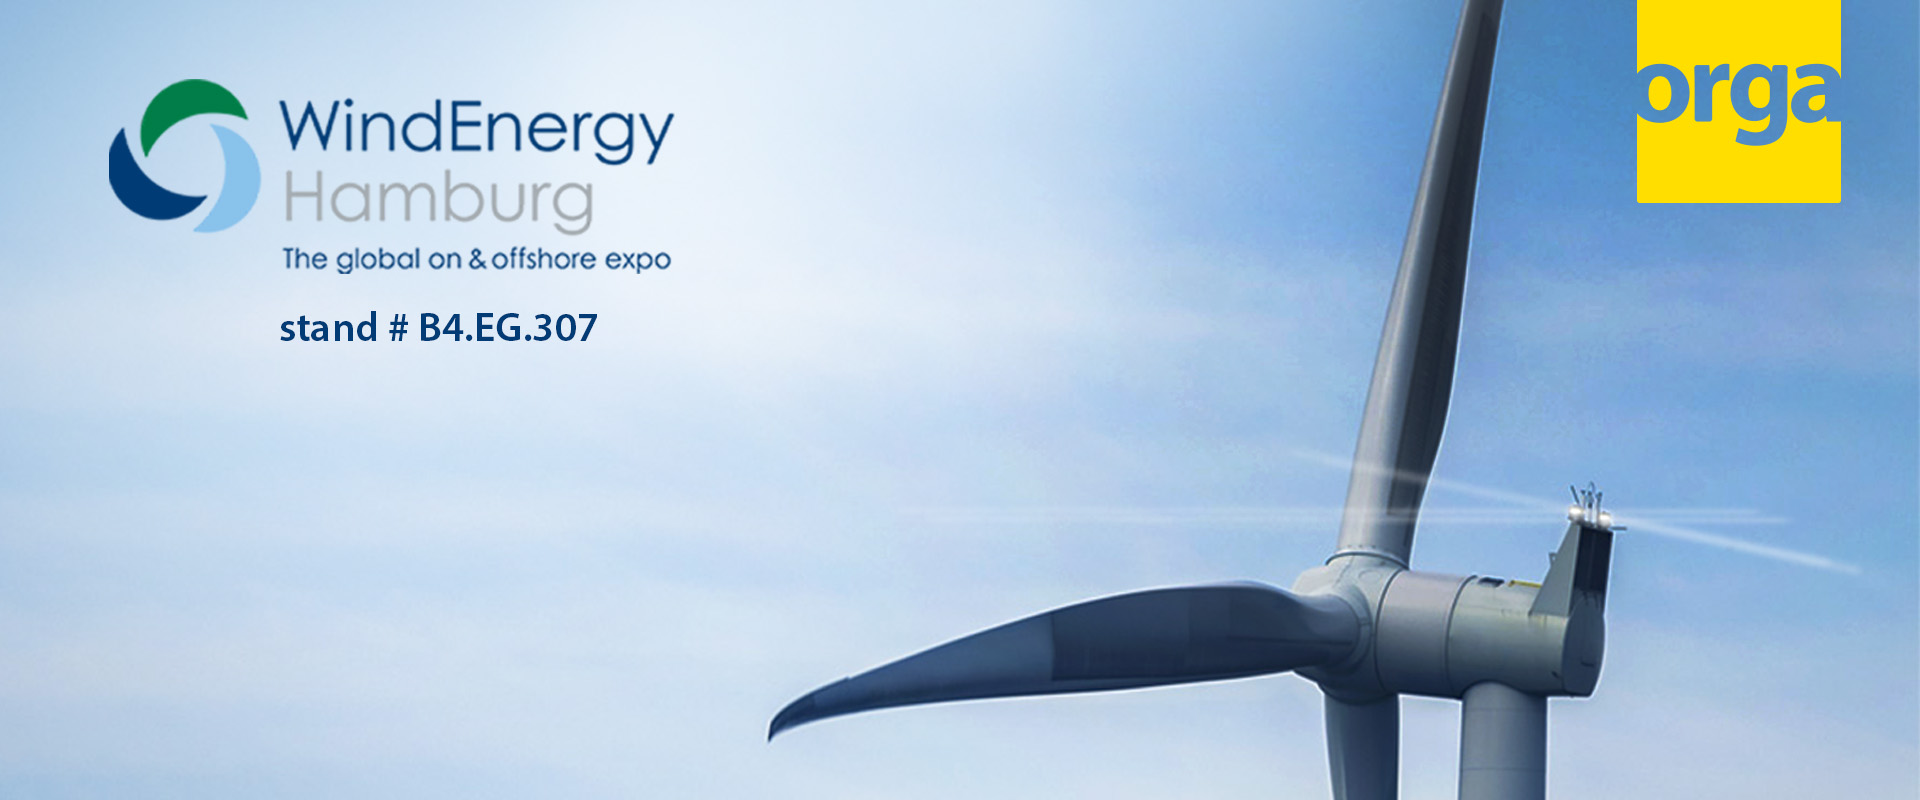 Orga at Wind Energy hamburg 2018